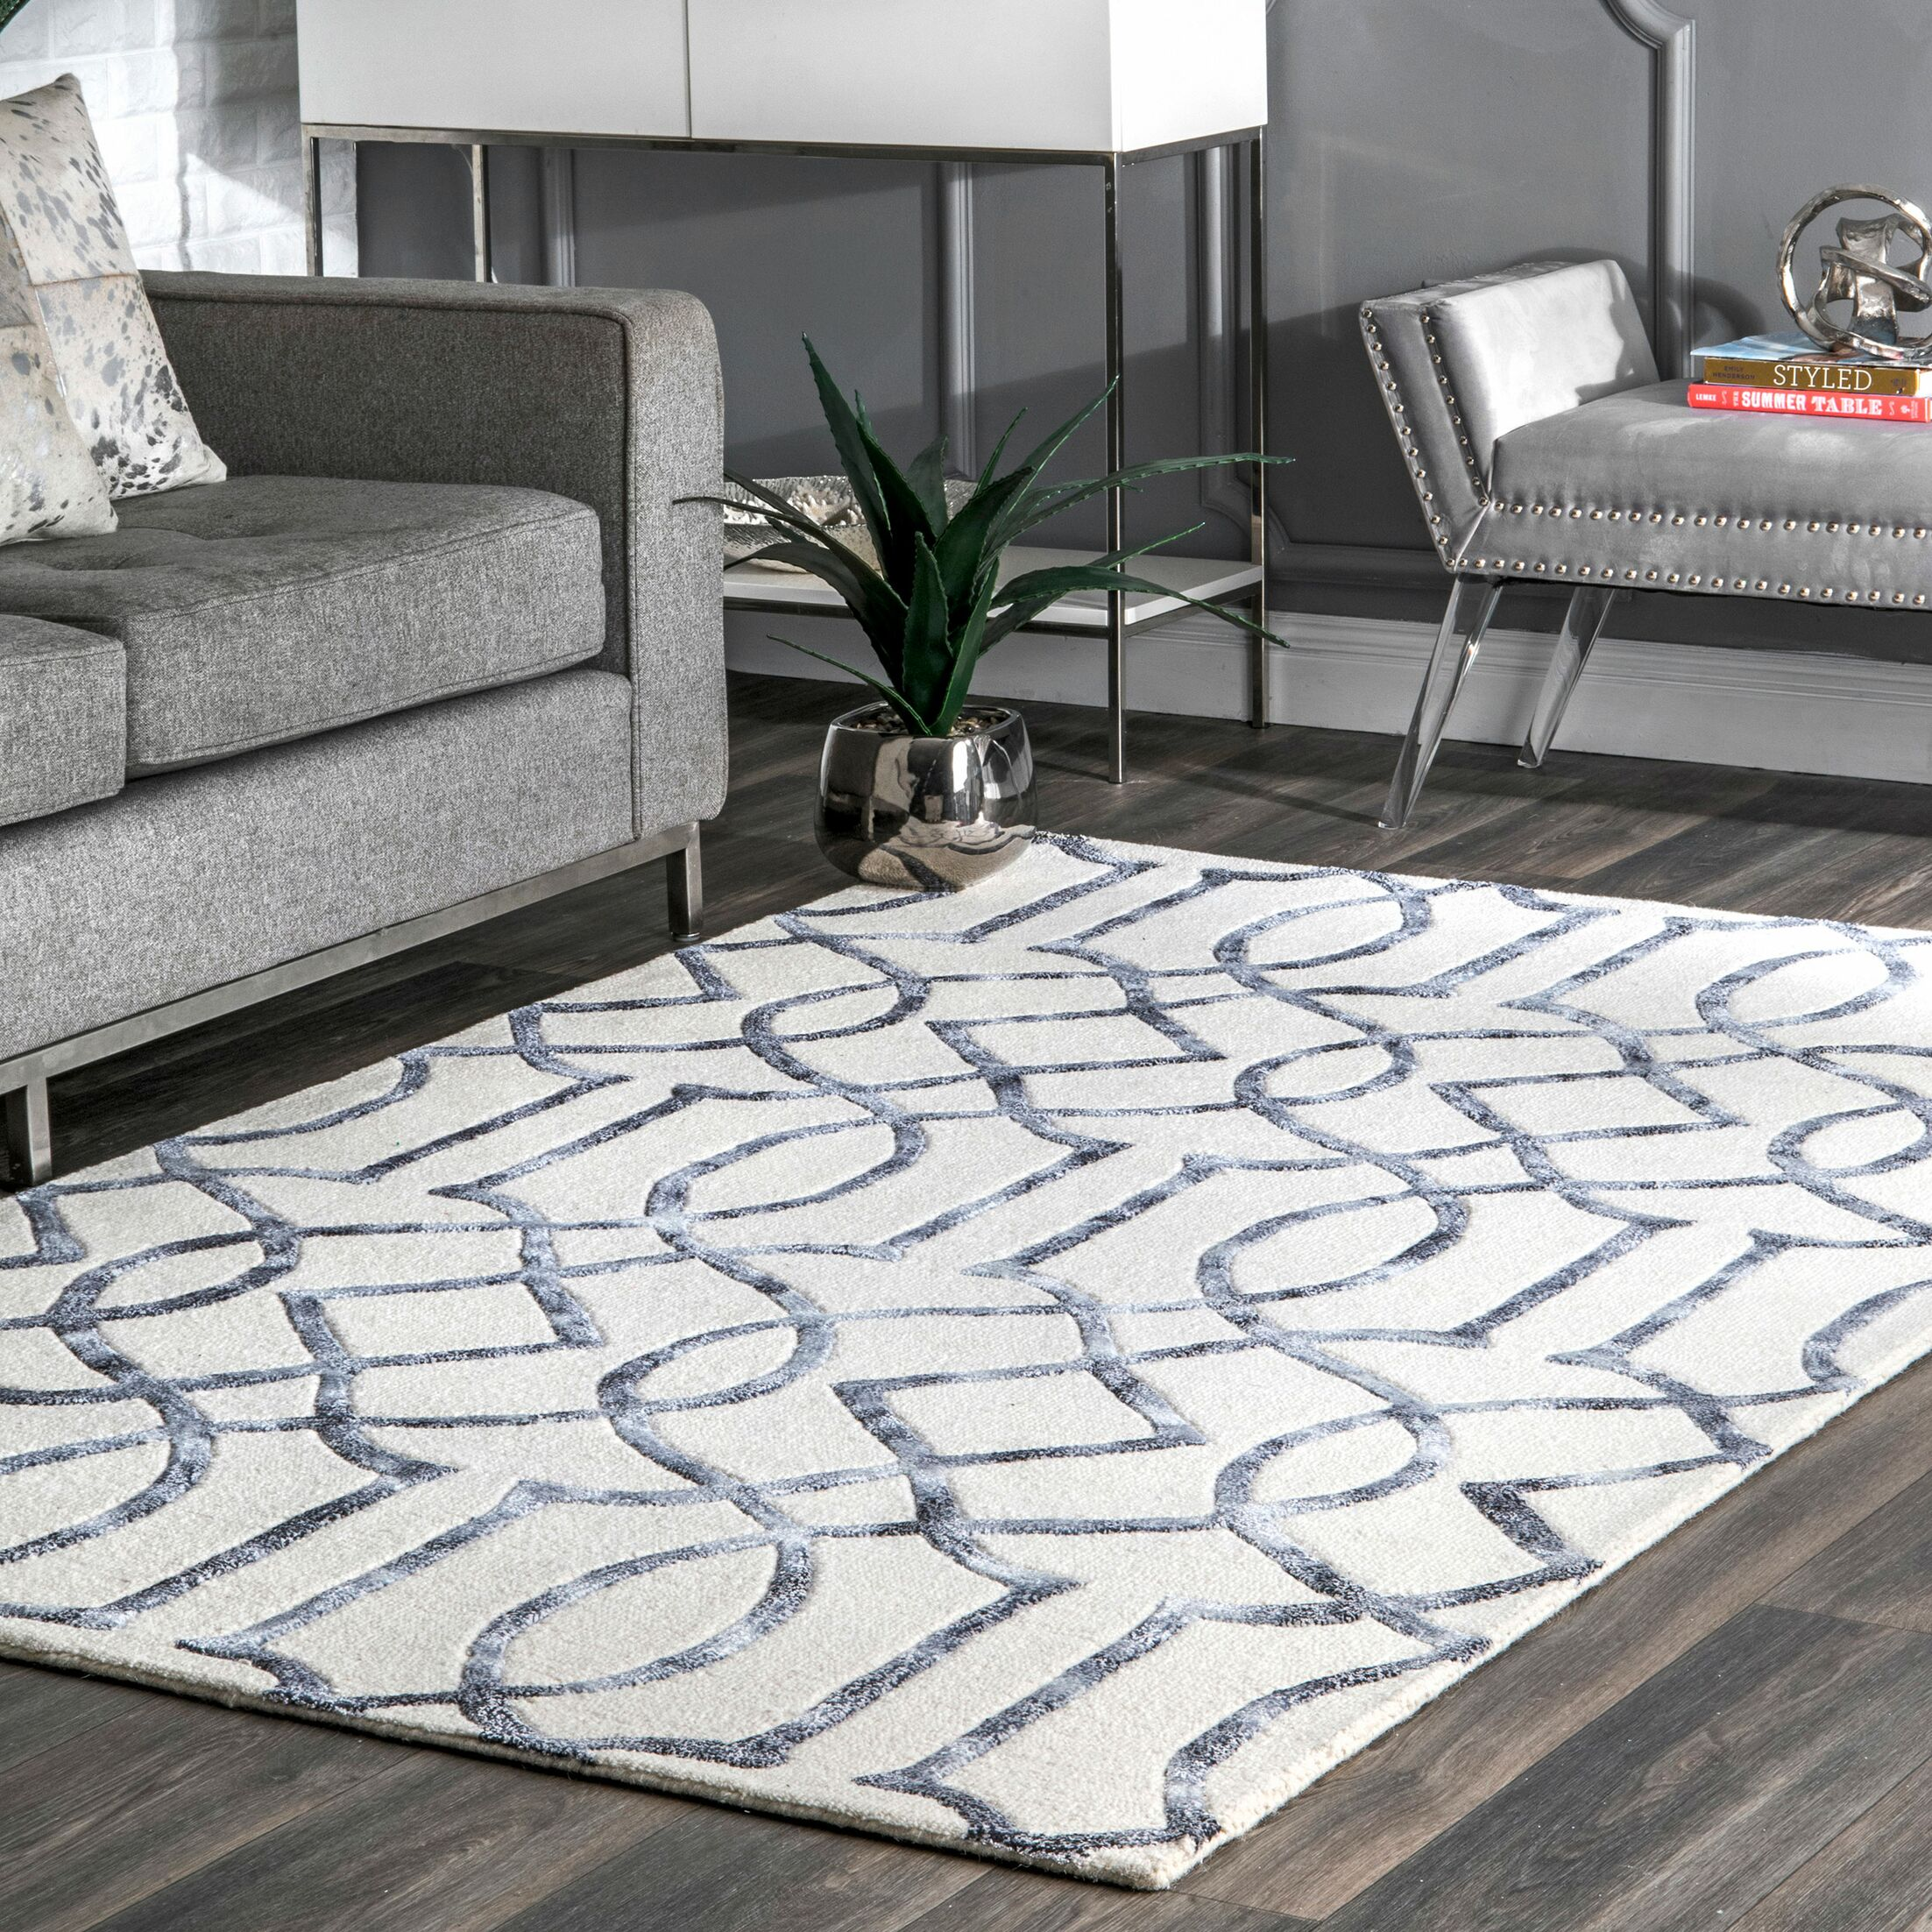 Shores Hand-Tufted Silver Area Rug Rug Size: Rectangle 4' x 6'